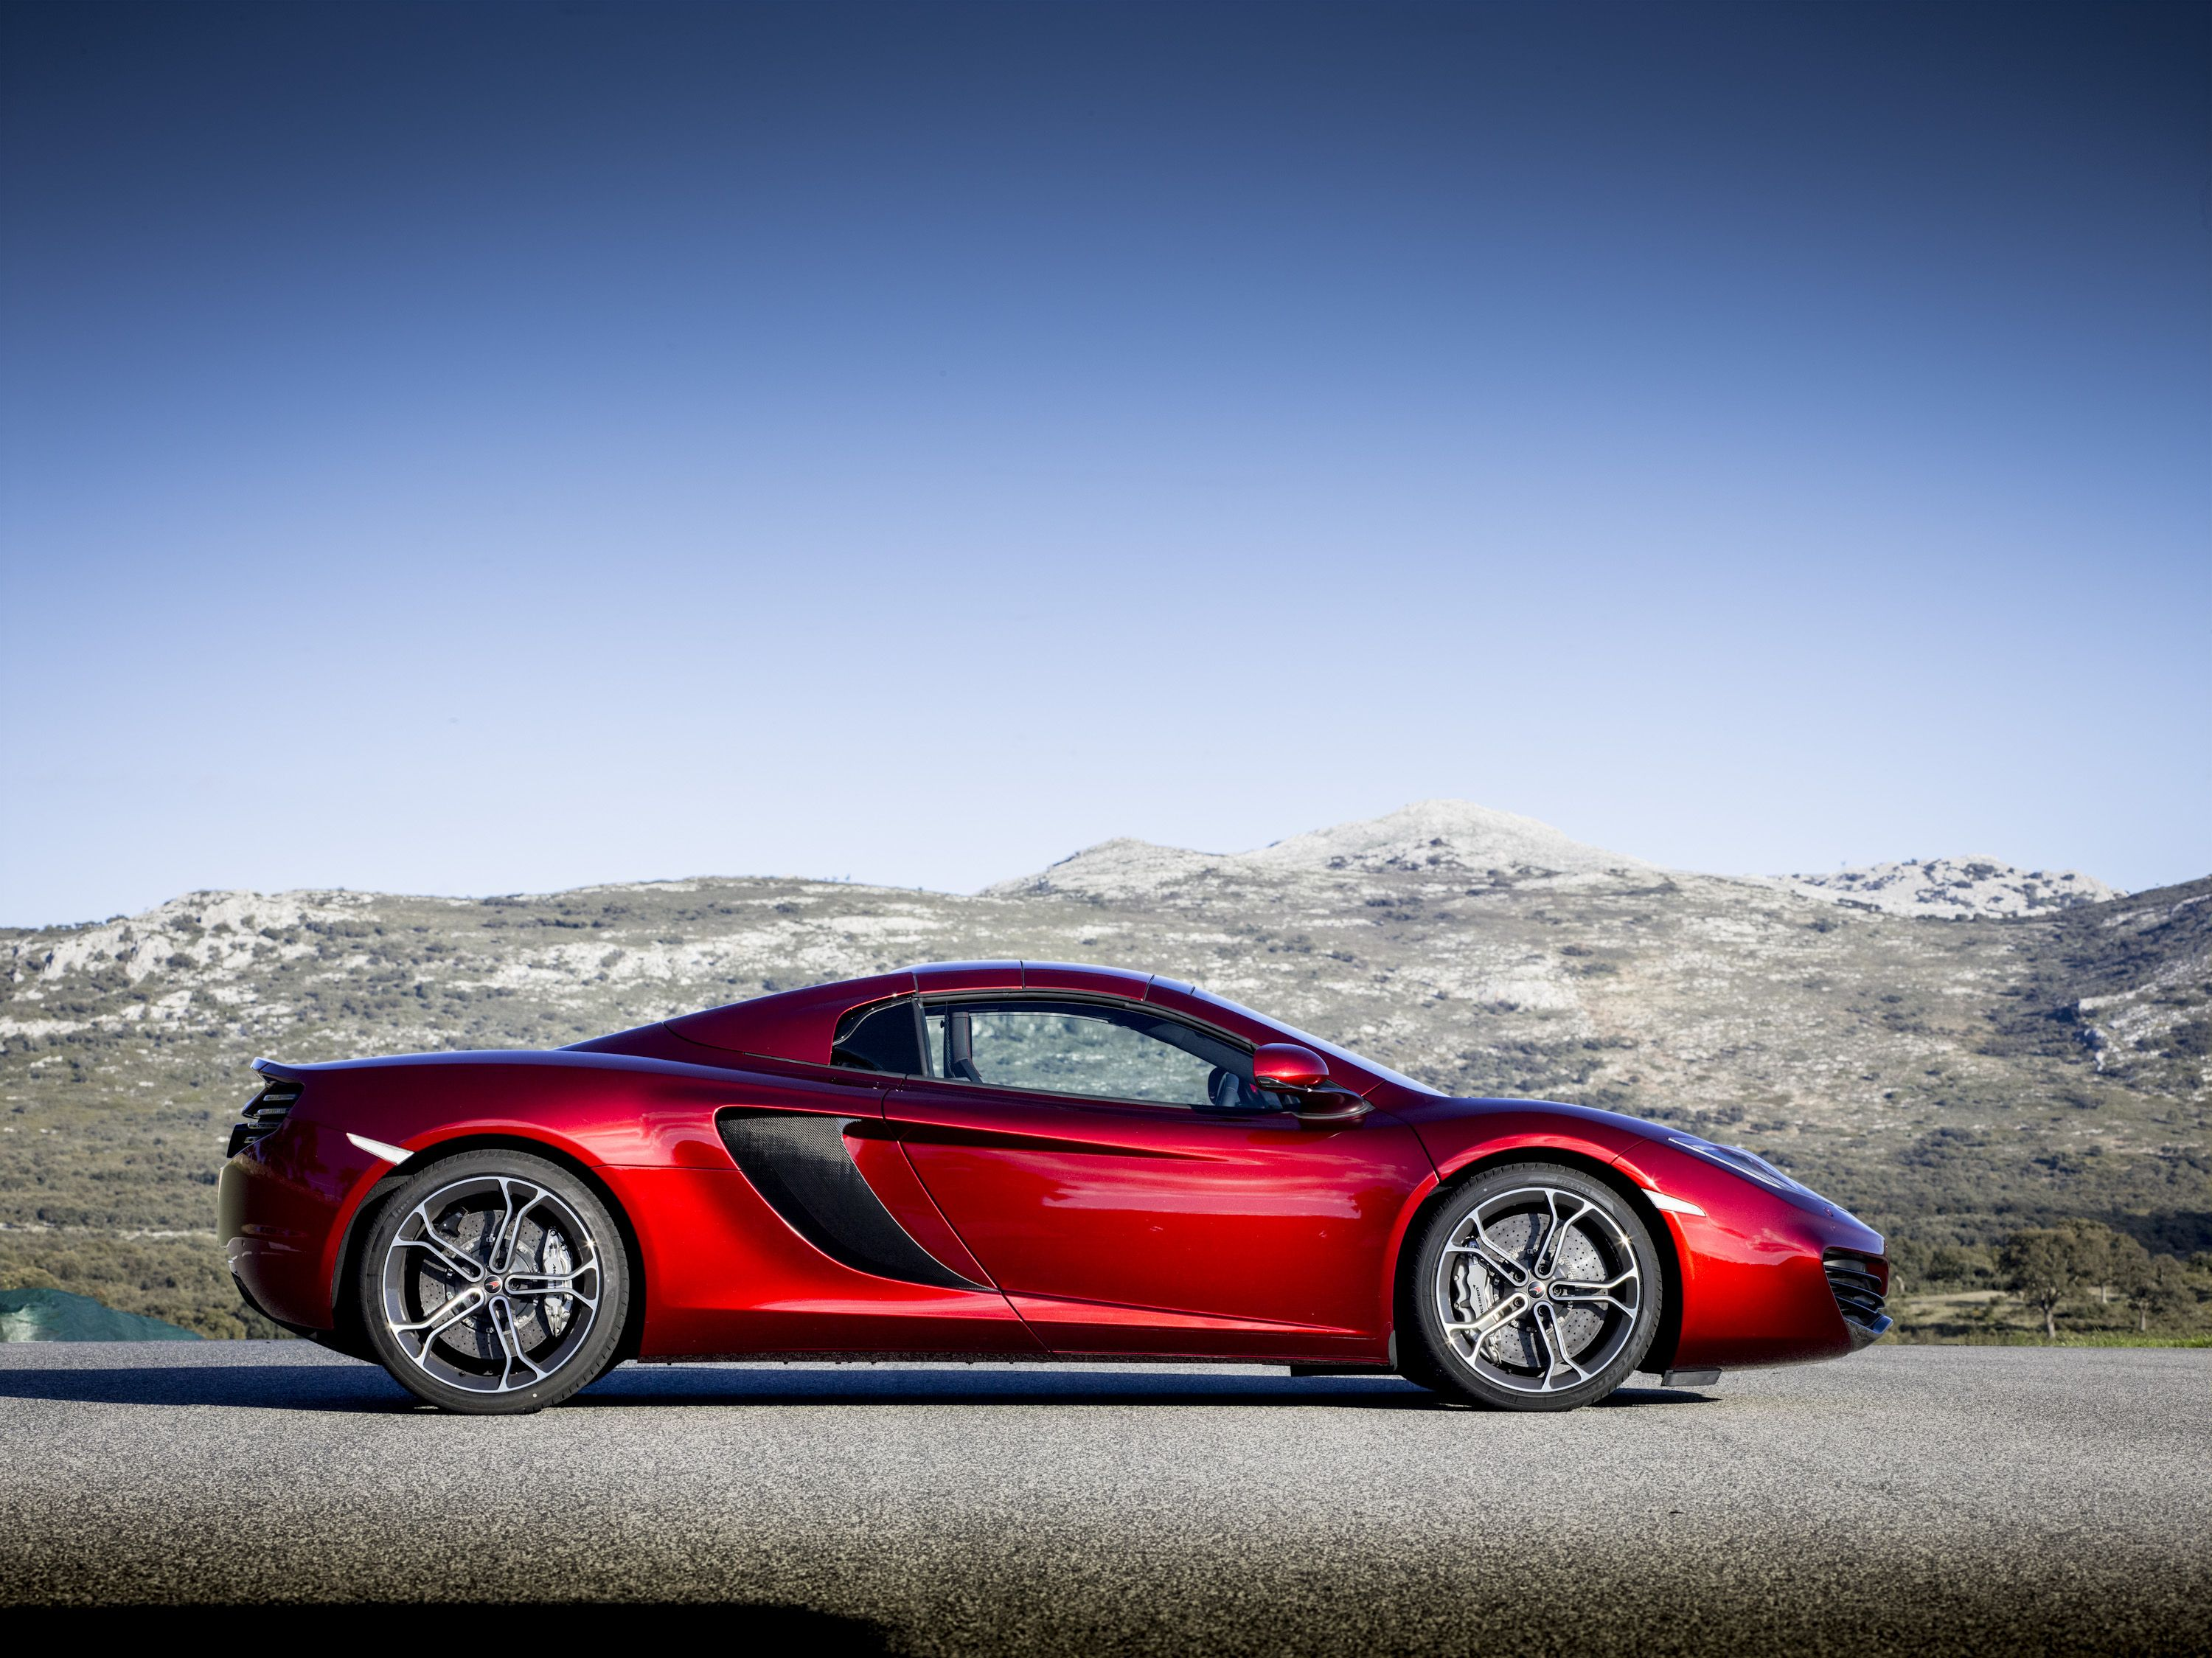 McLaren MP4-12C Spider Roof Up